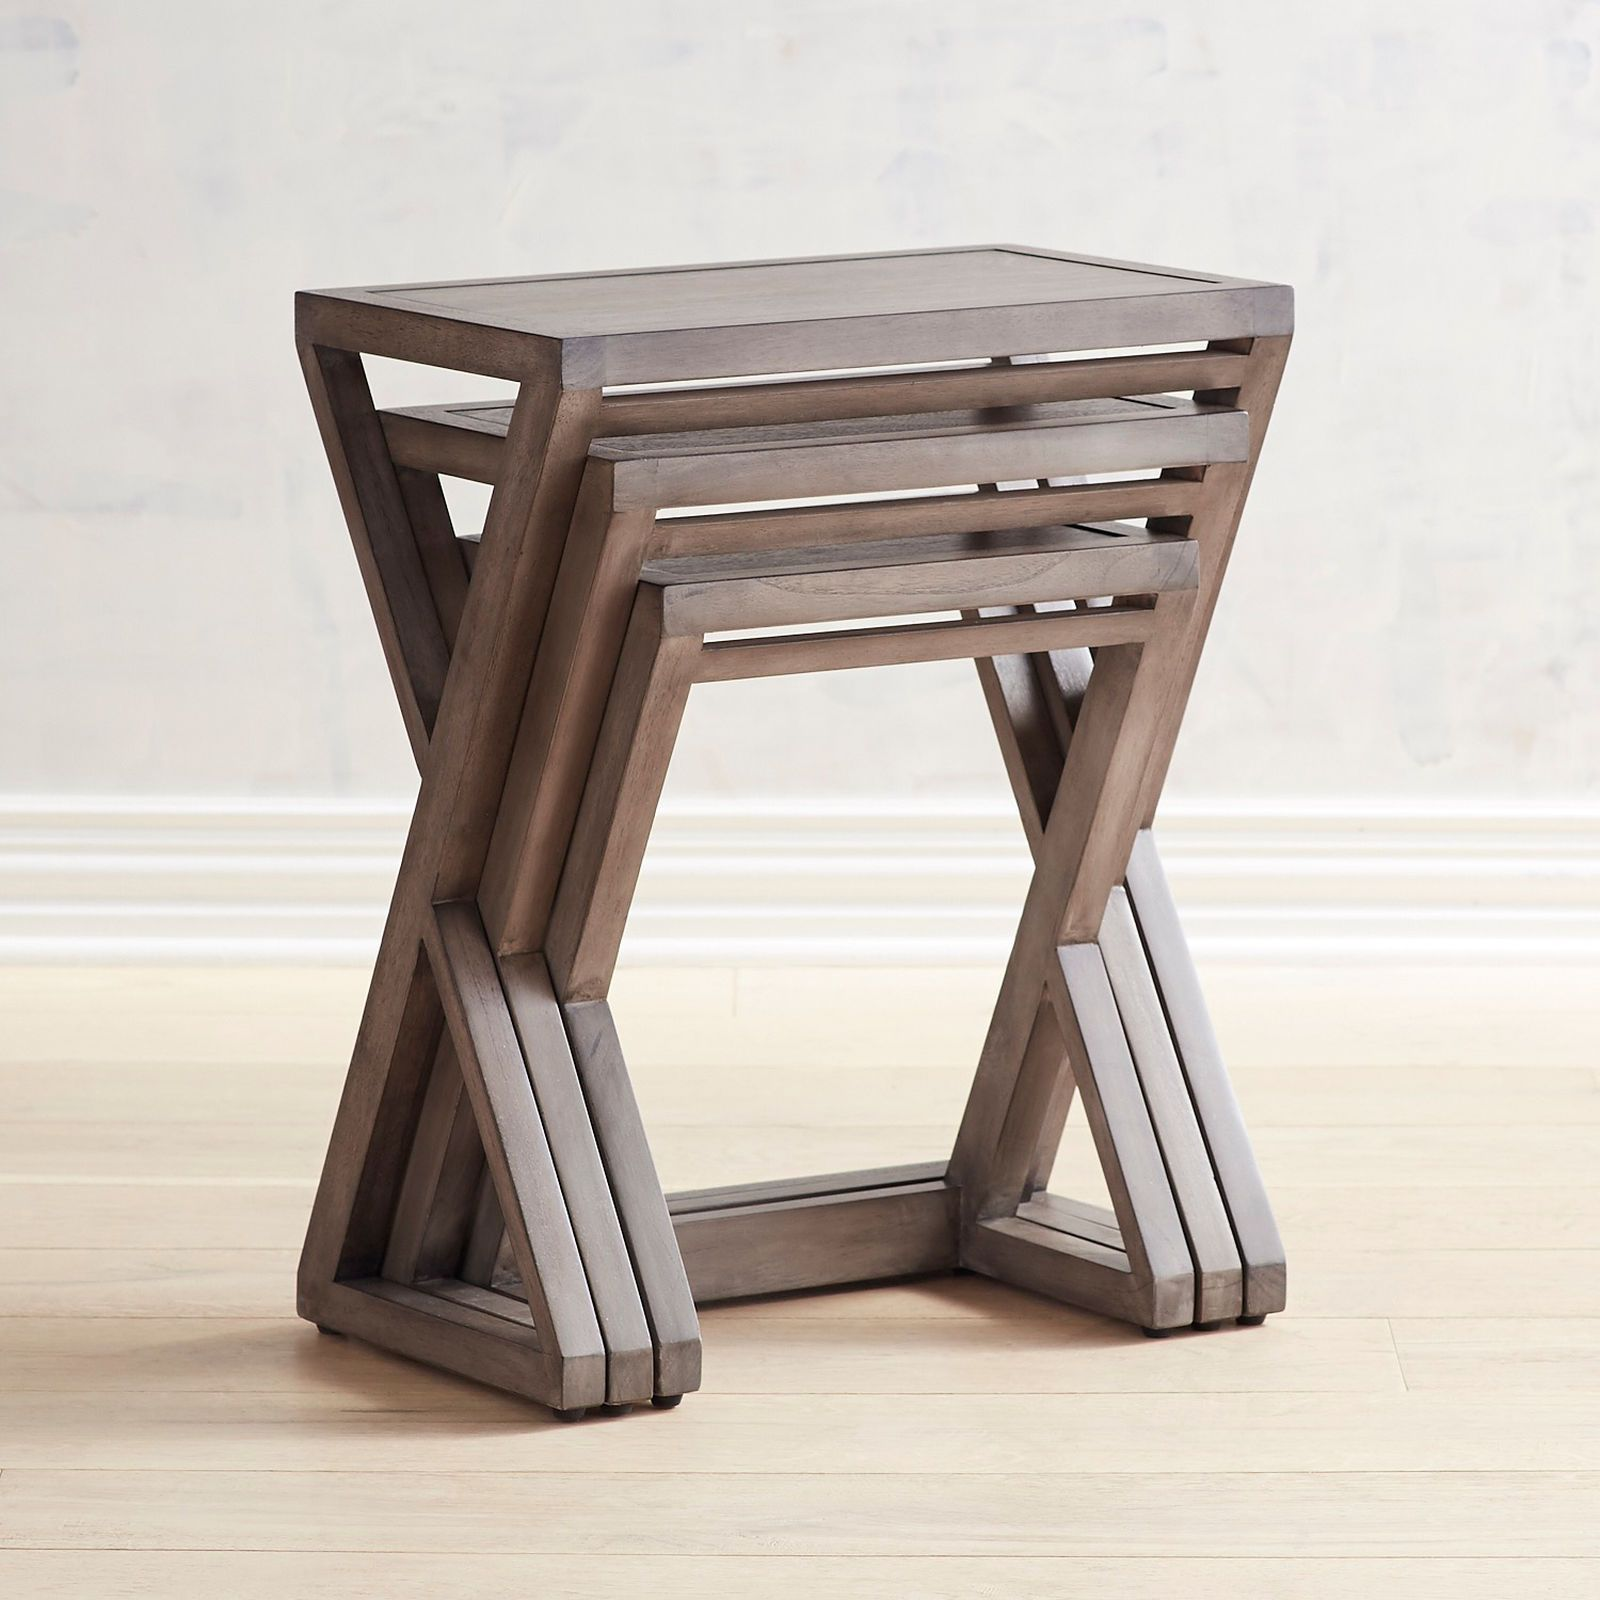 Zano Gray Nesting Tables - Pier 1 Imports